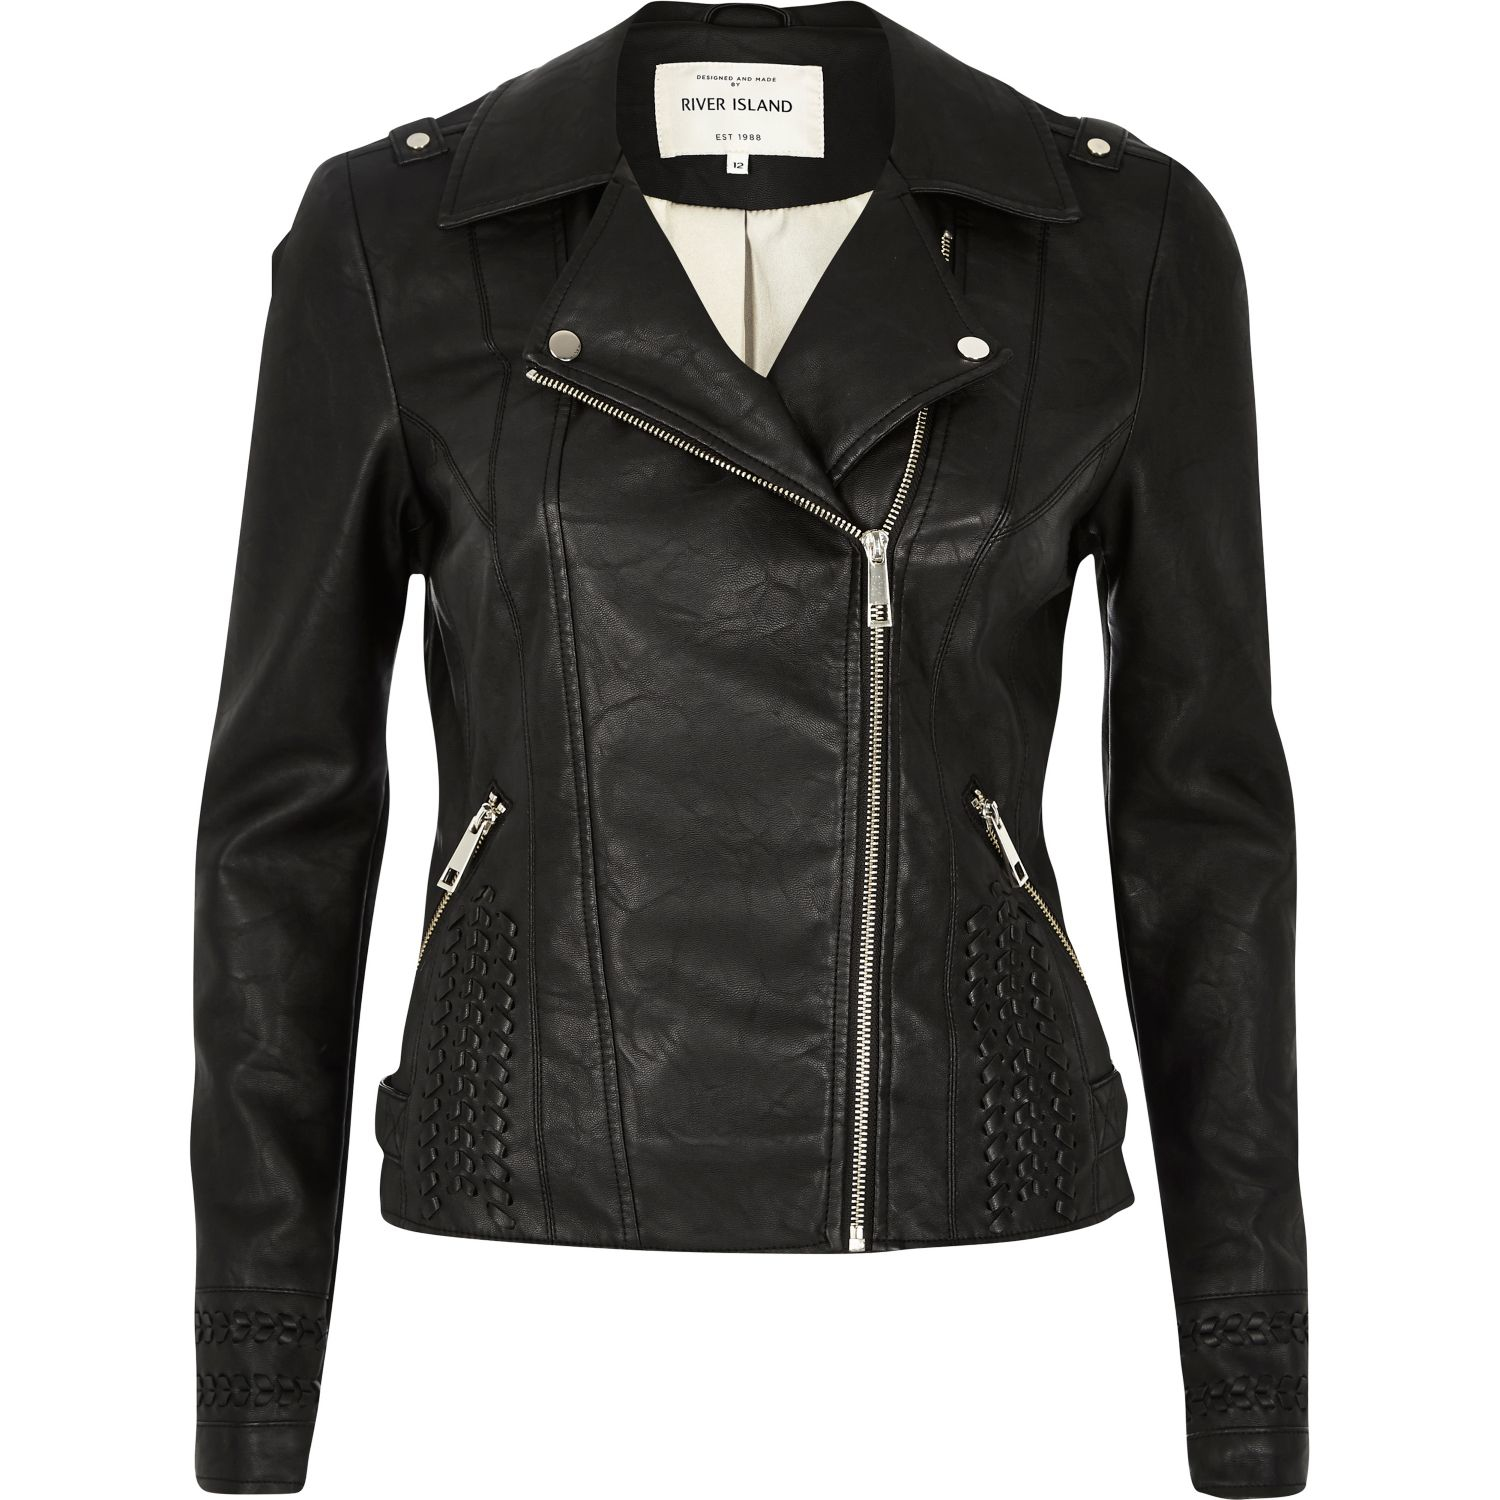 Complete your wardrobe with a head-turning leather jacket from our iconic collection. Featuring classic biker jackets in black, brown and tan, faux fur collars, cropped and gothic styled jackets.